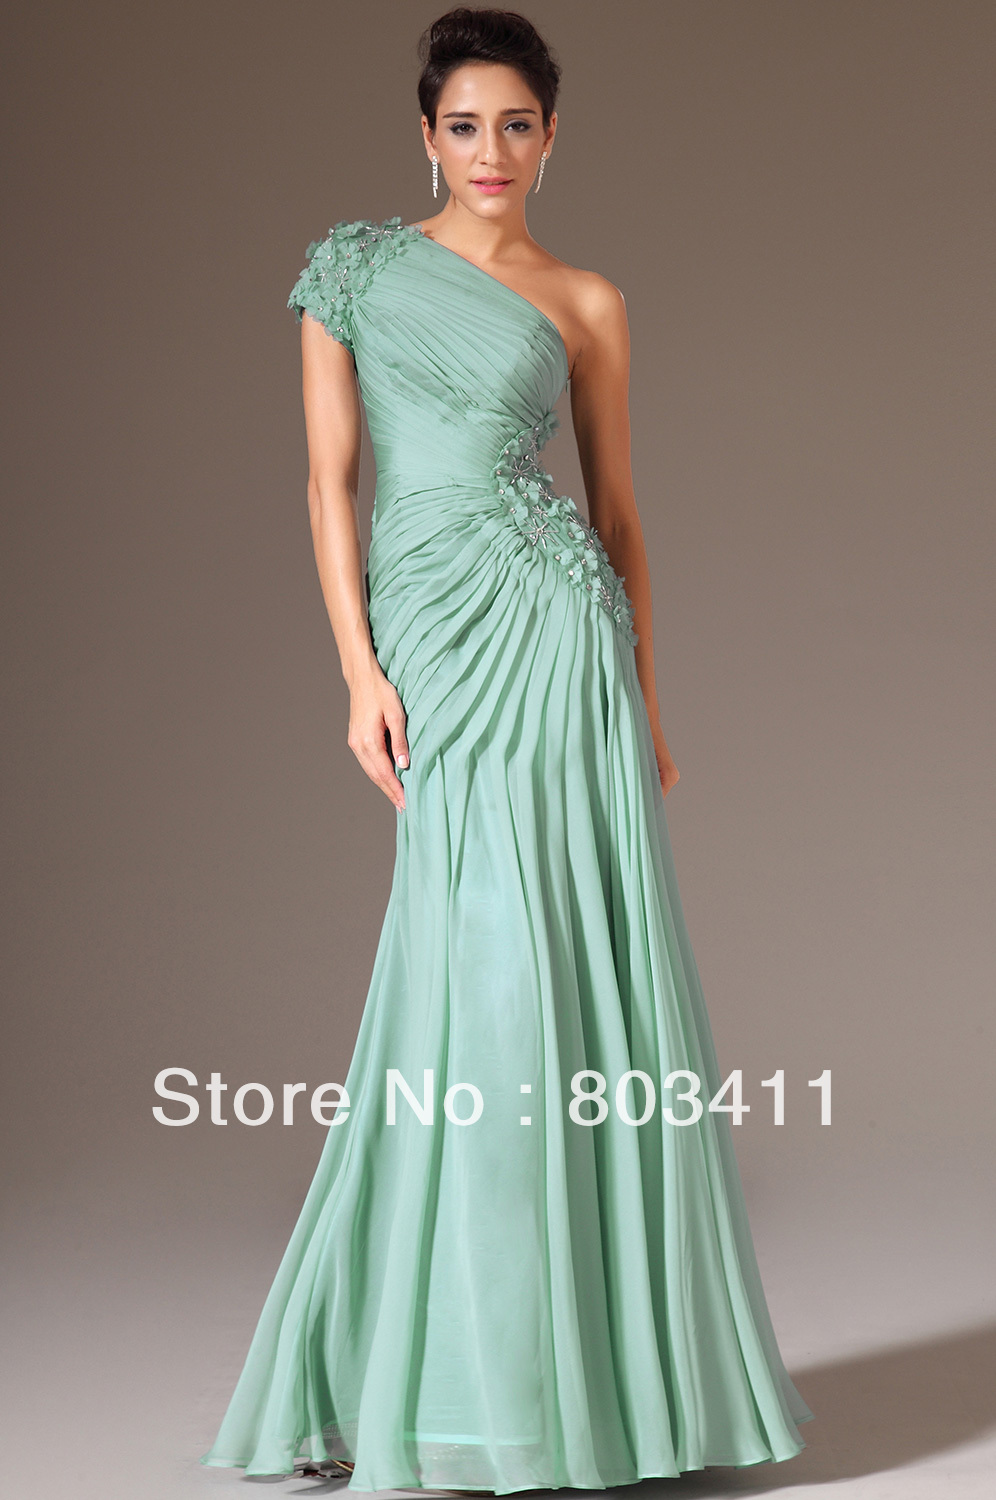 Old Fashioned Alice Prom Dress Vignette - Womens Dresses & Gowns ...